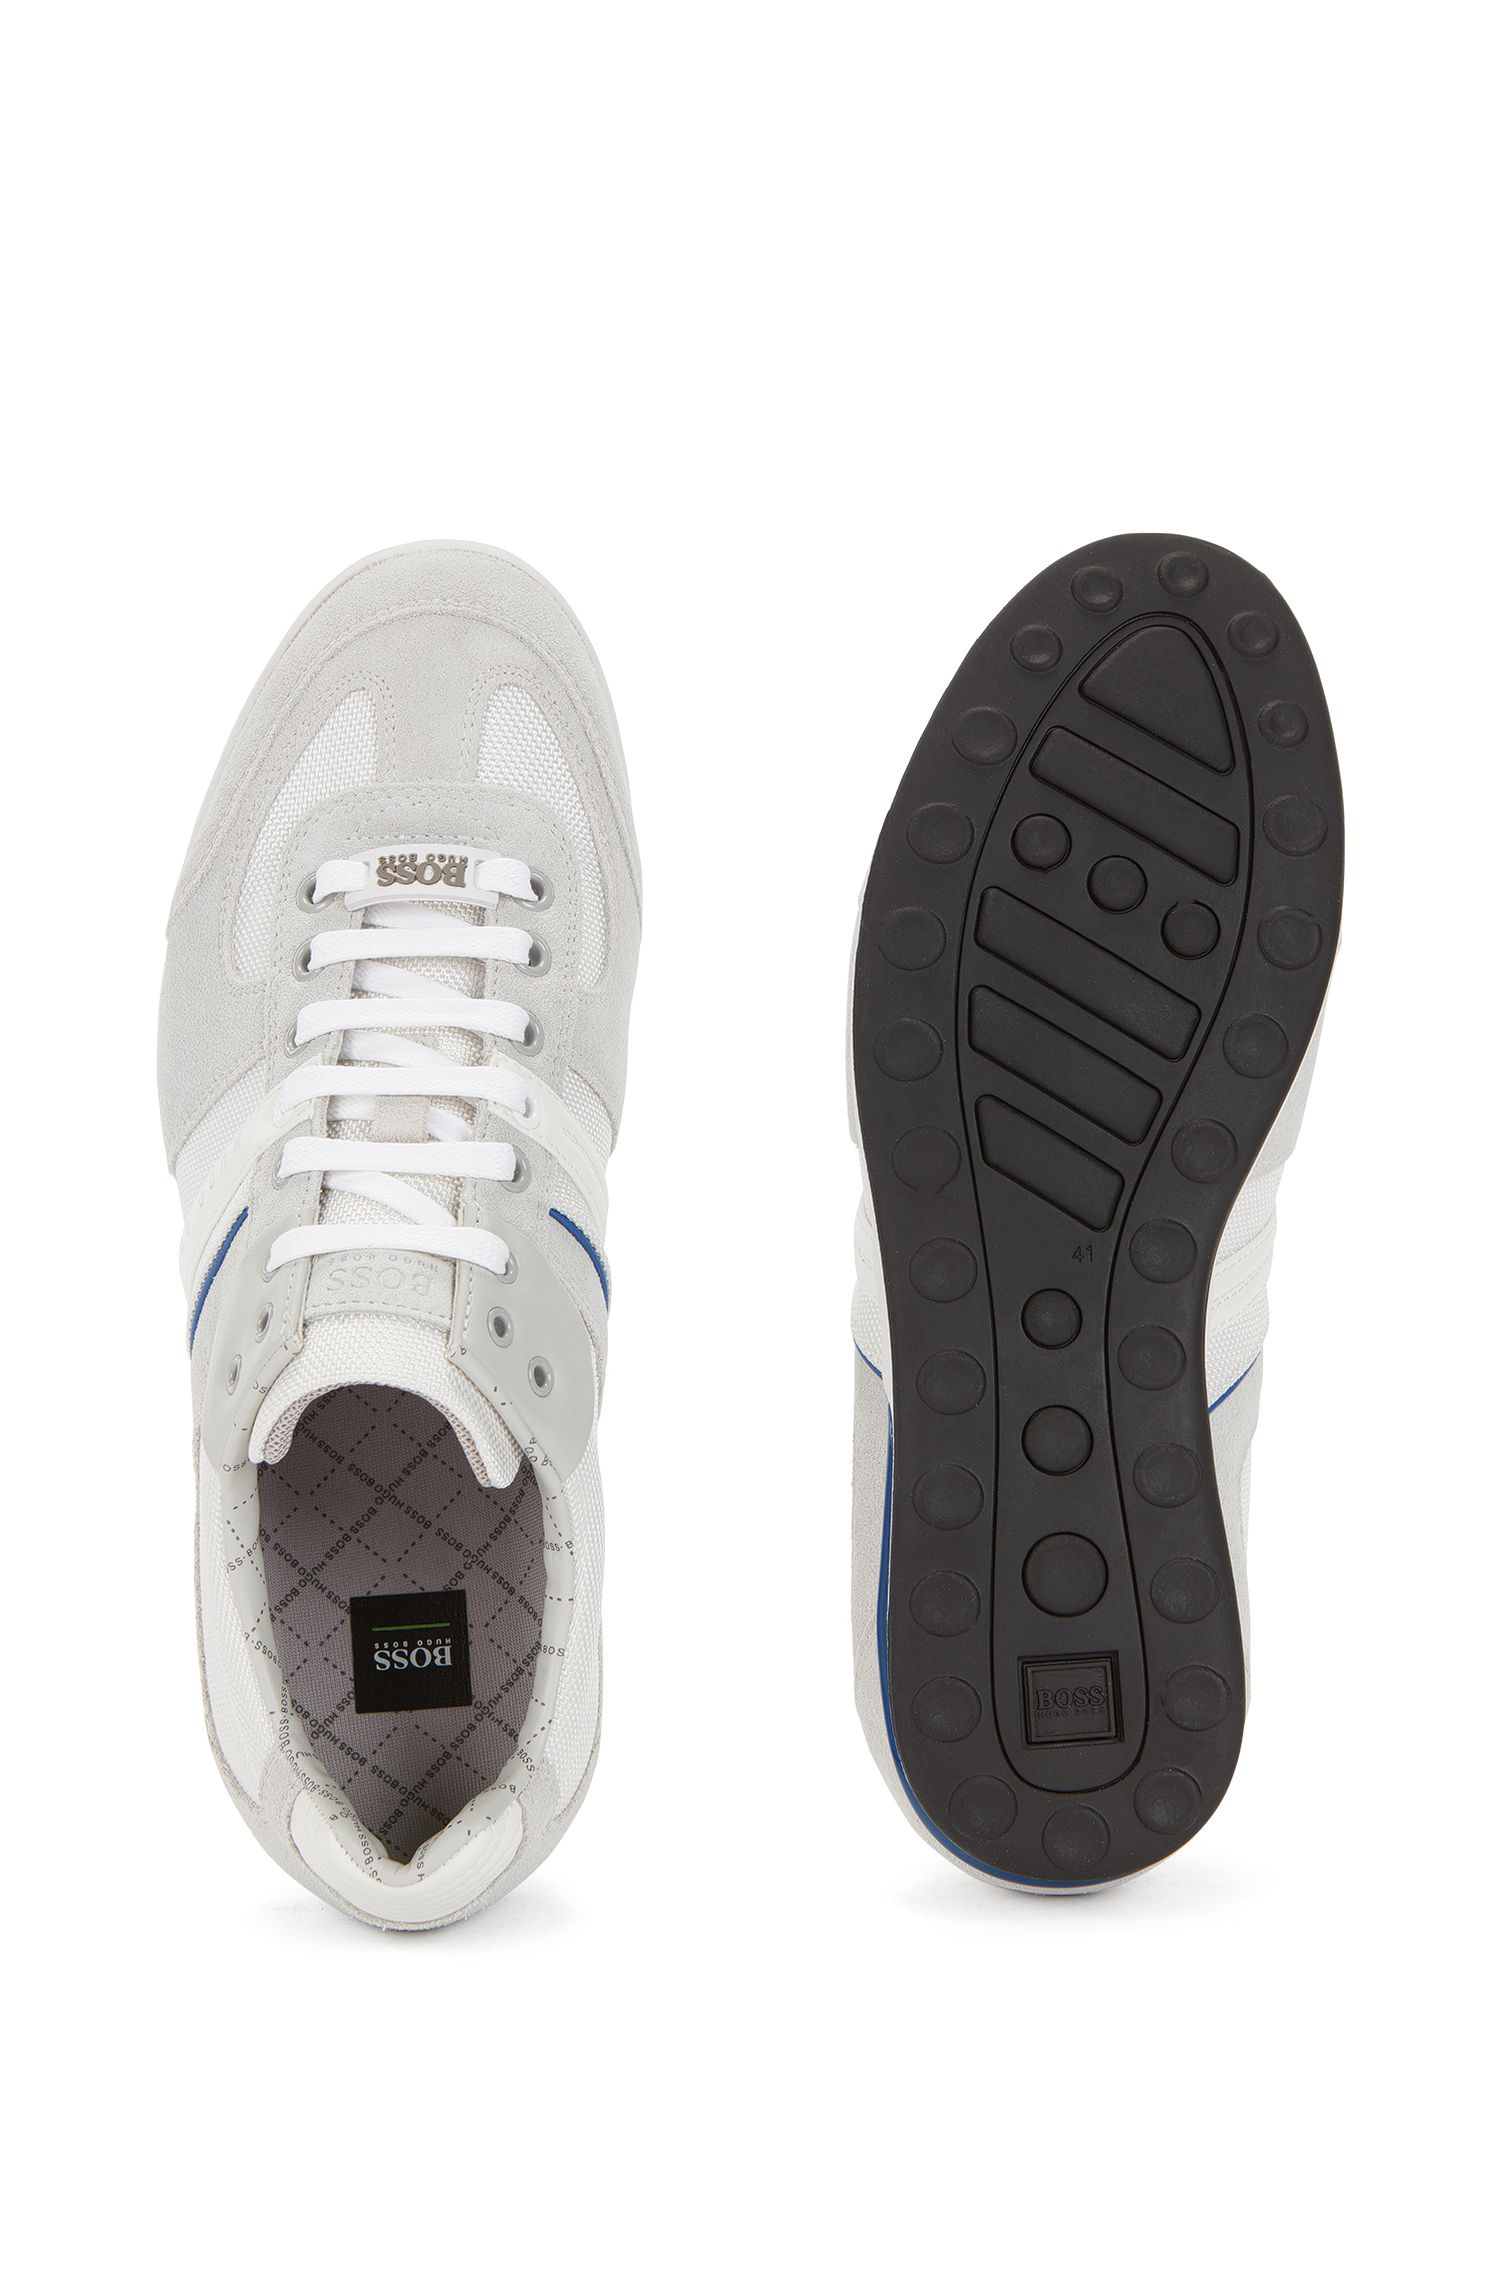 Low-profile sneakers with technical construction